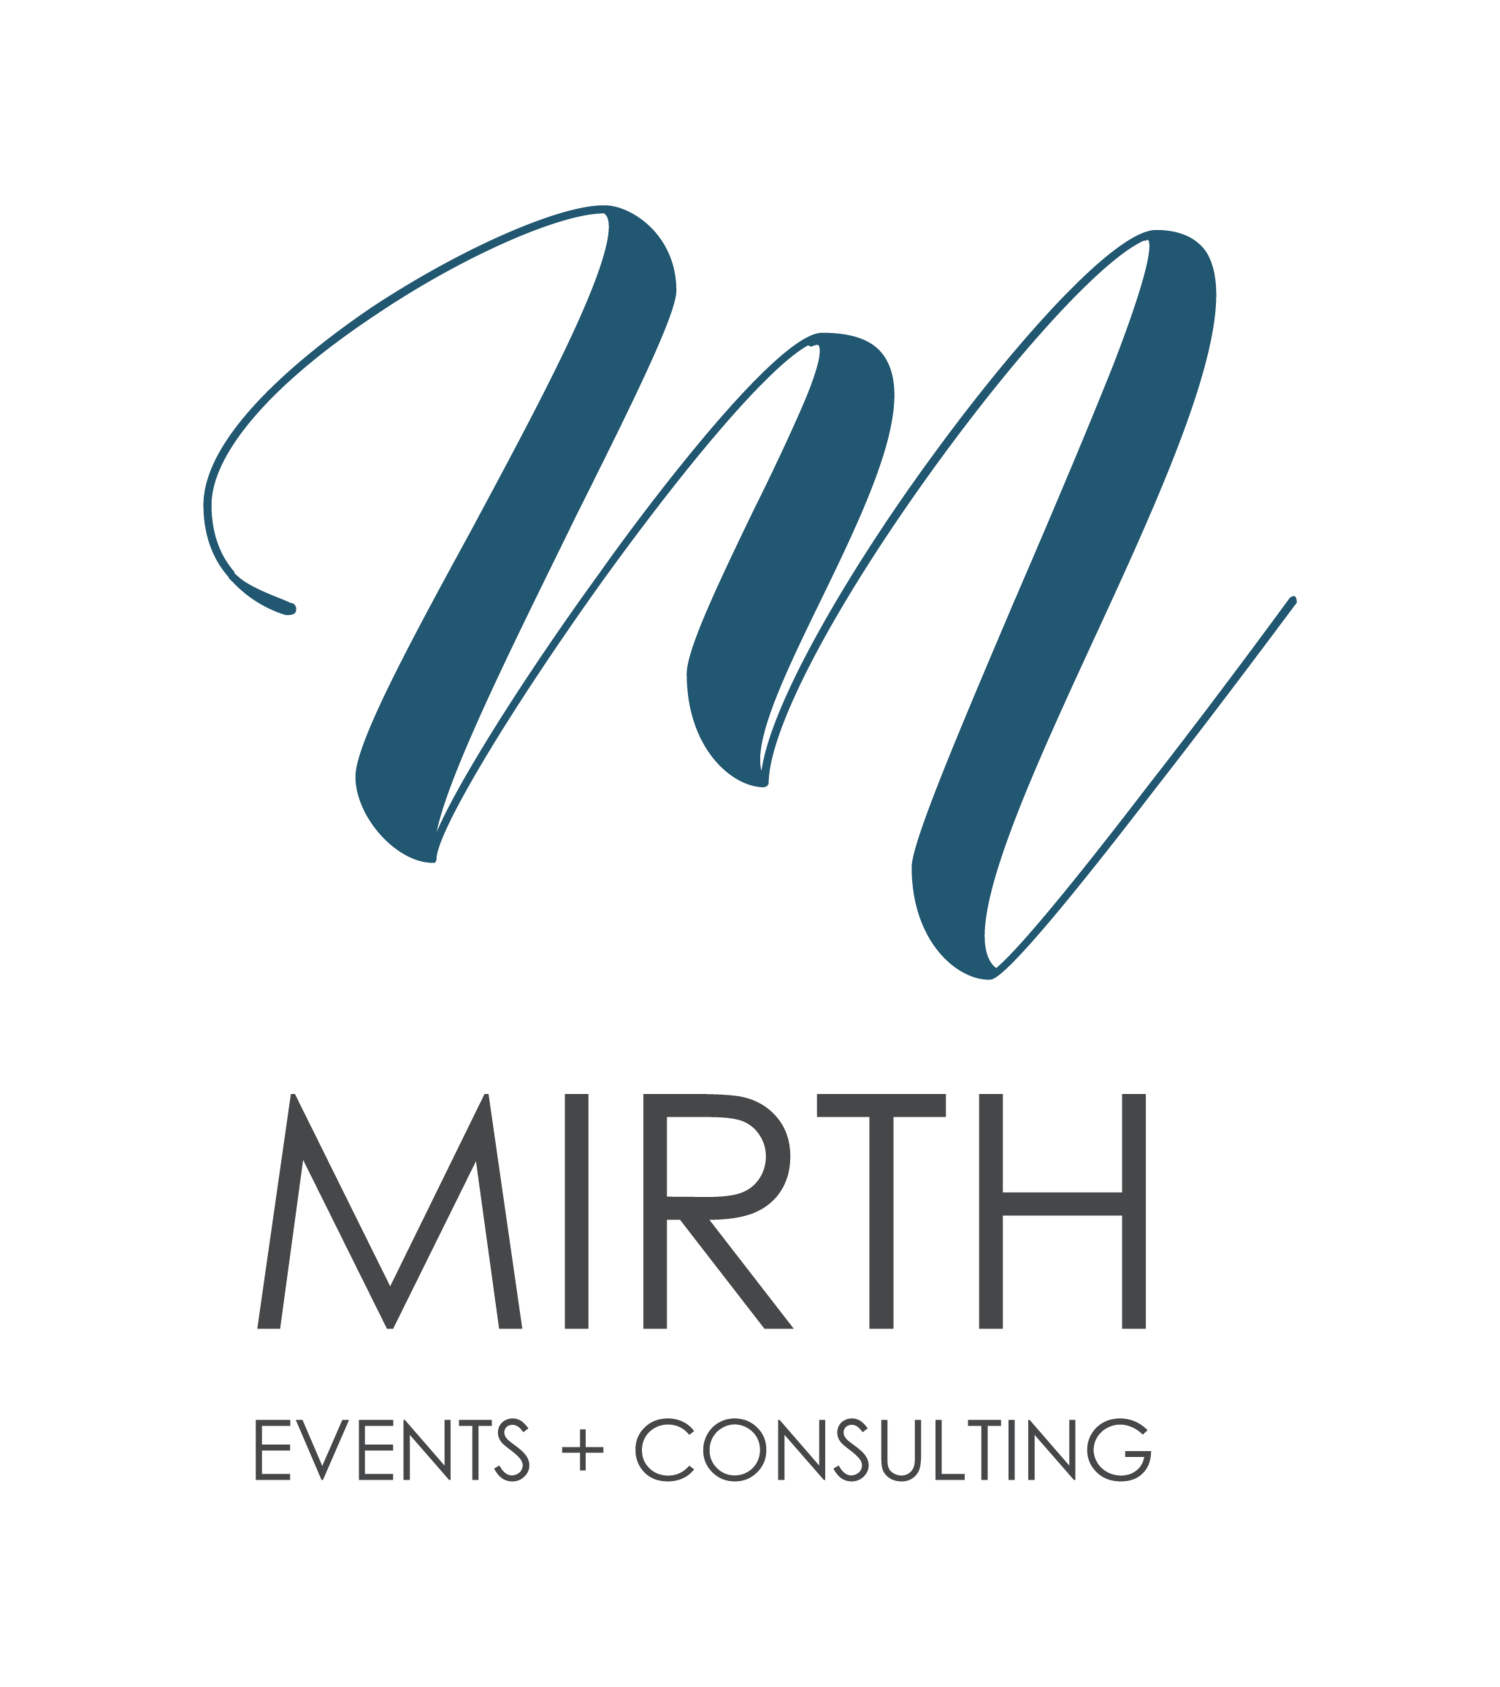 Mirth Events and Consulting